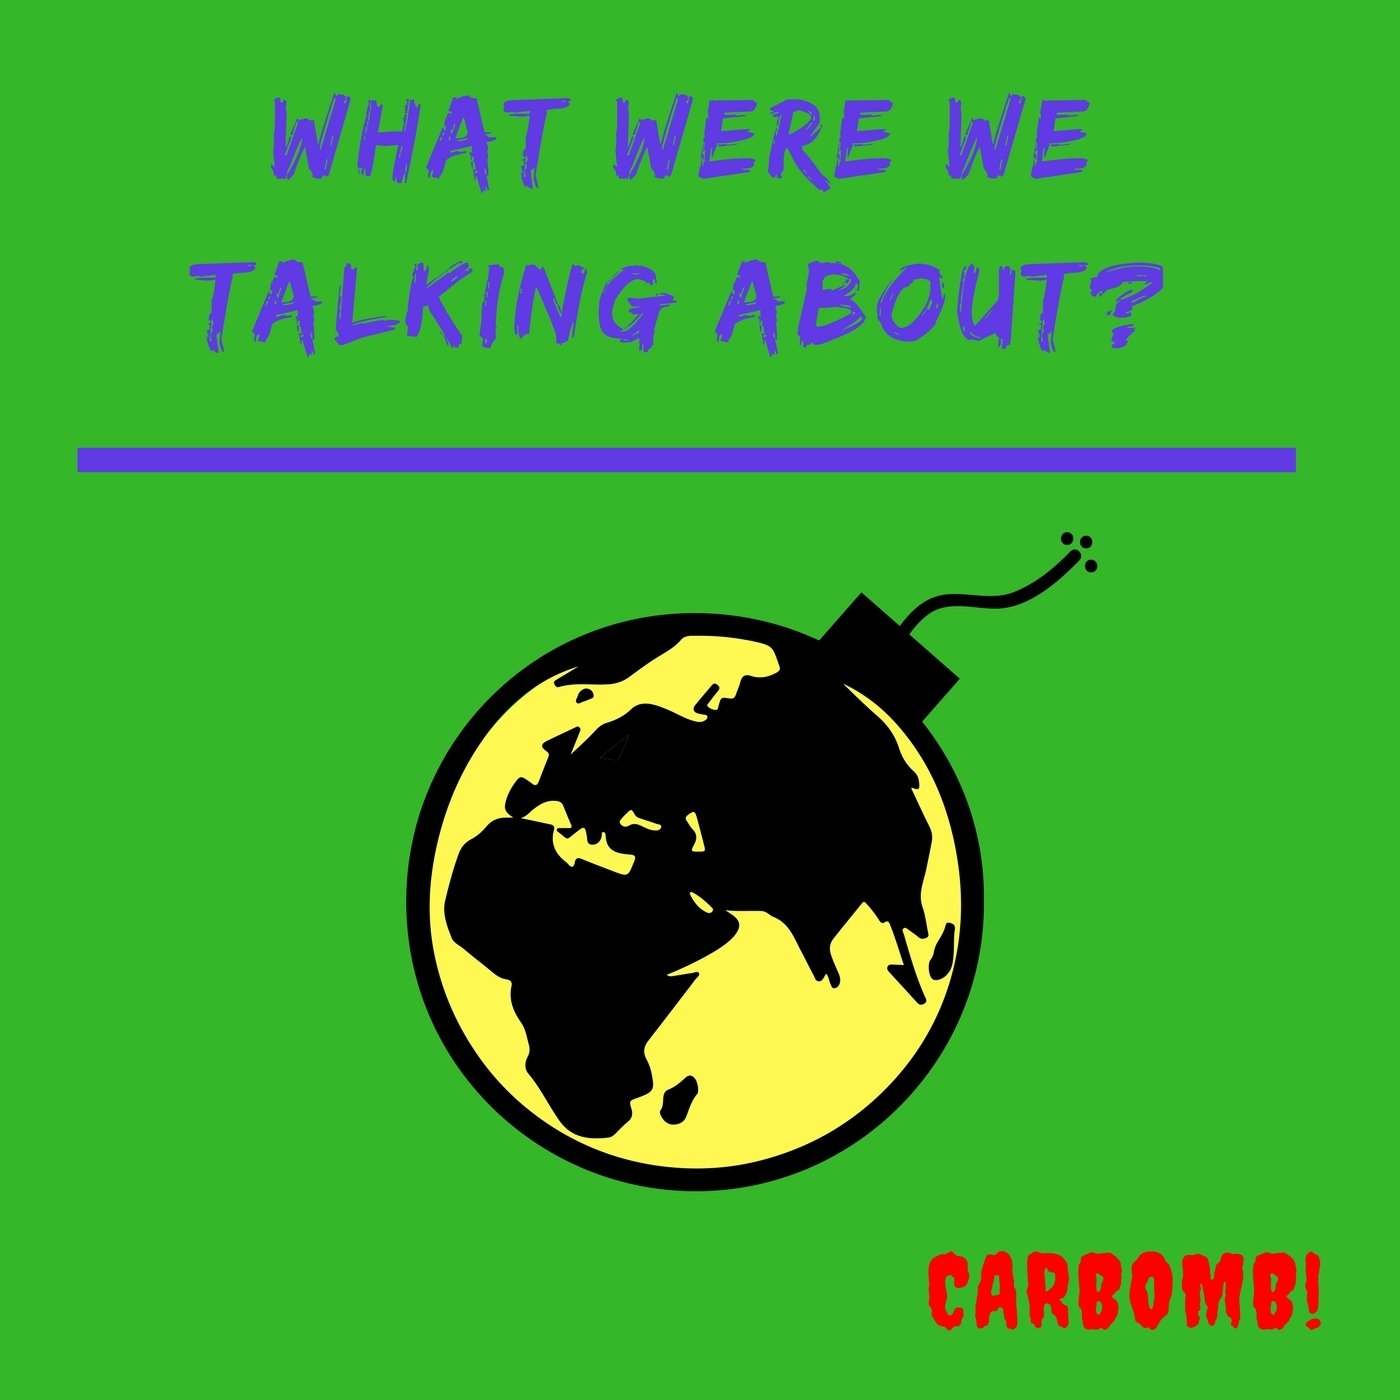 CarBomb! - What Were We Talking About? (Single)